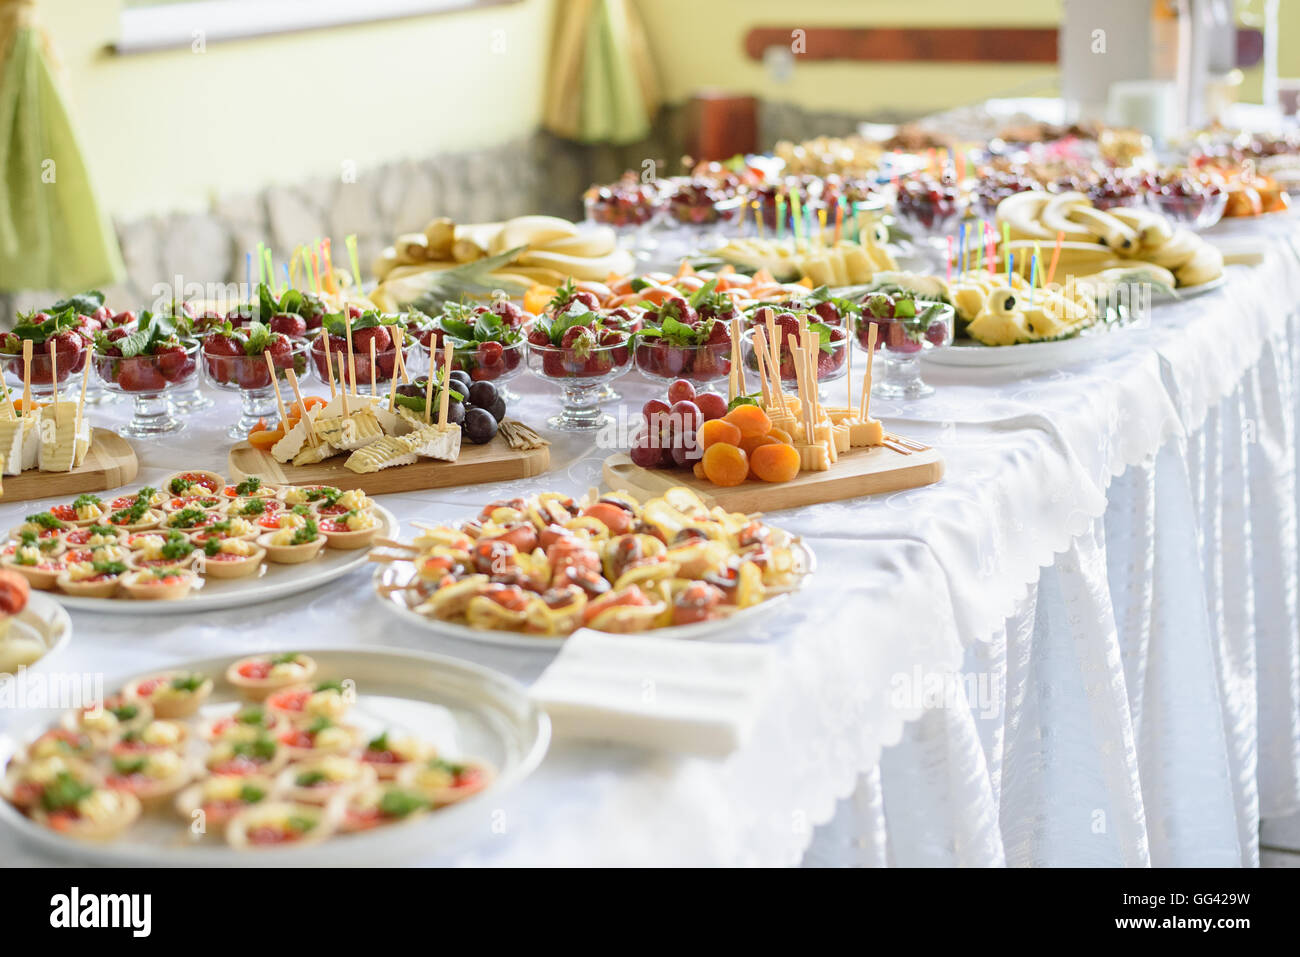 Catering and banquet wedding table setting on evening reception awaiting guests - Stock Image